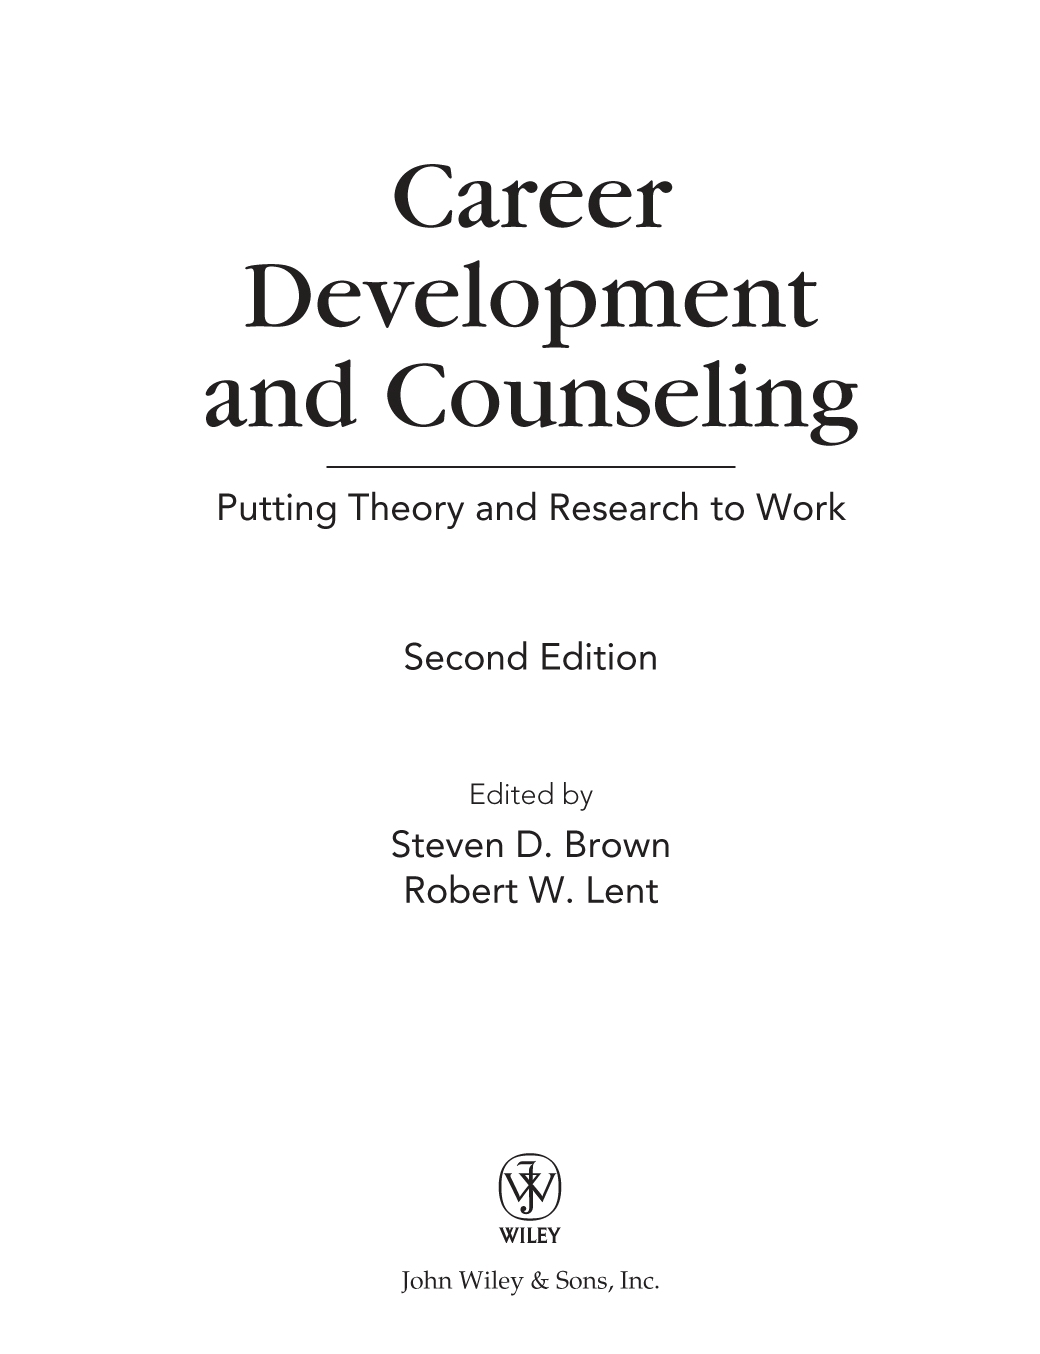 Adult counseling in linking practice theory transition